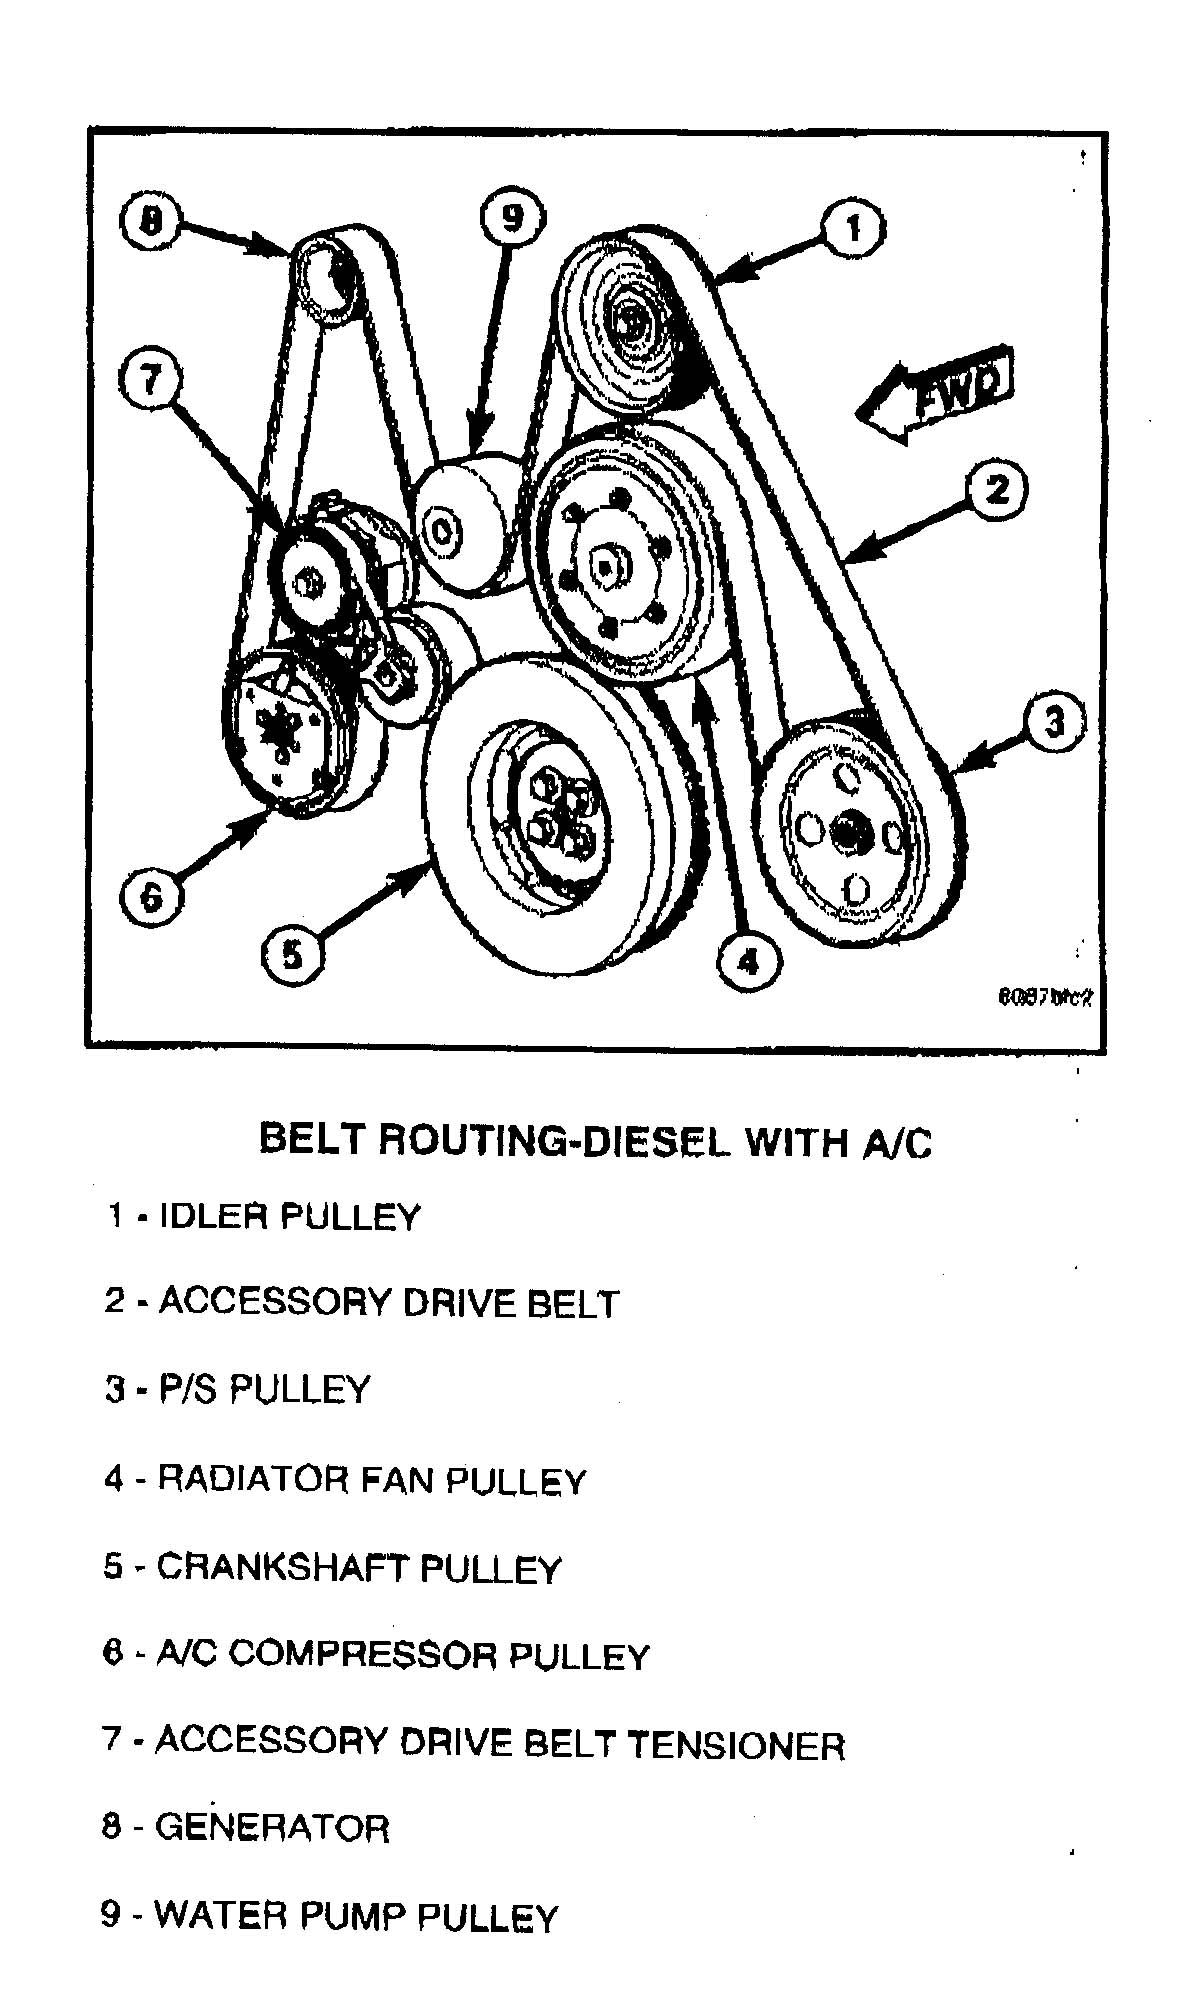 small resolution of 6 7 belt routing diagram dodge diesel diesel truck resource 2008 ford f 250 6 4 belt diagram